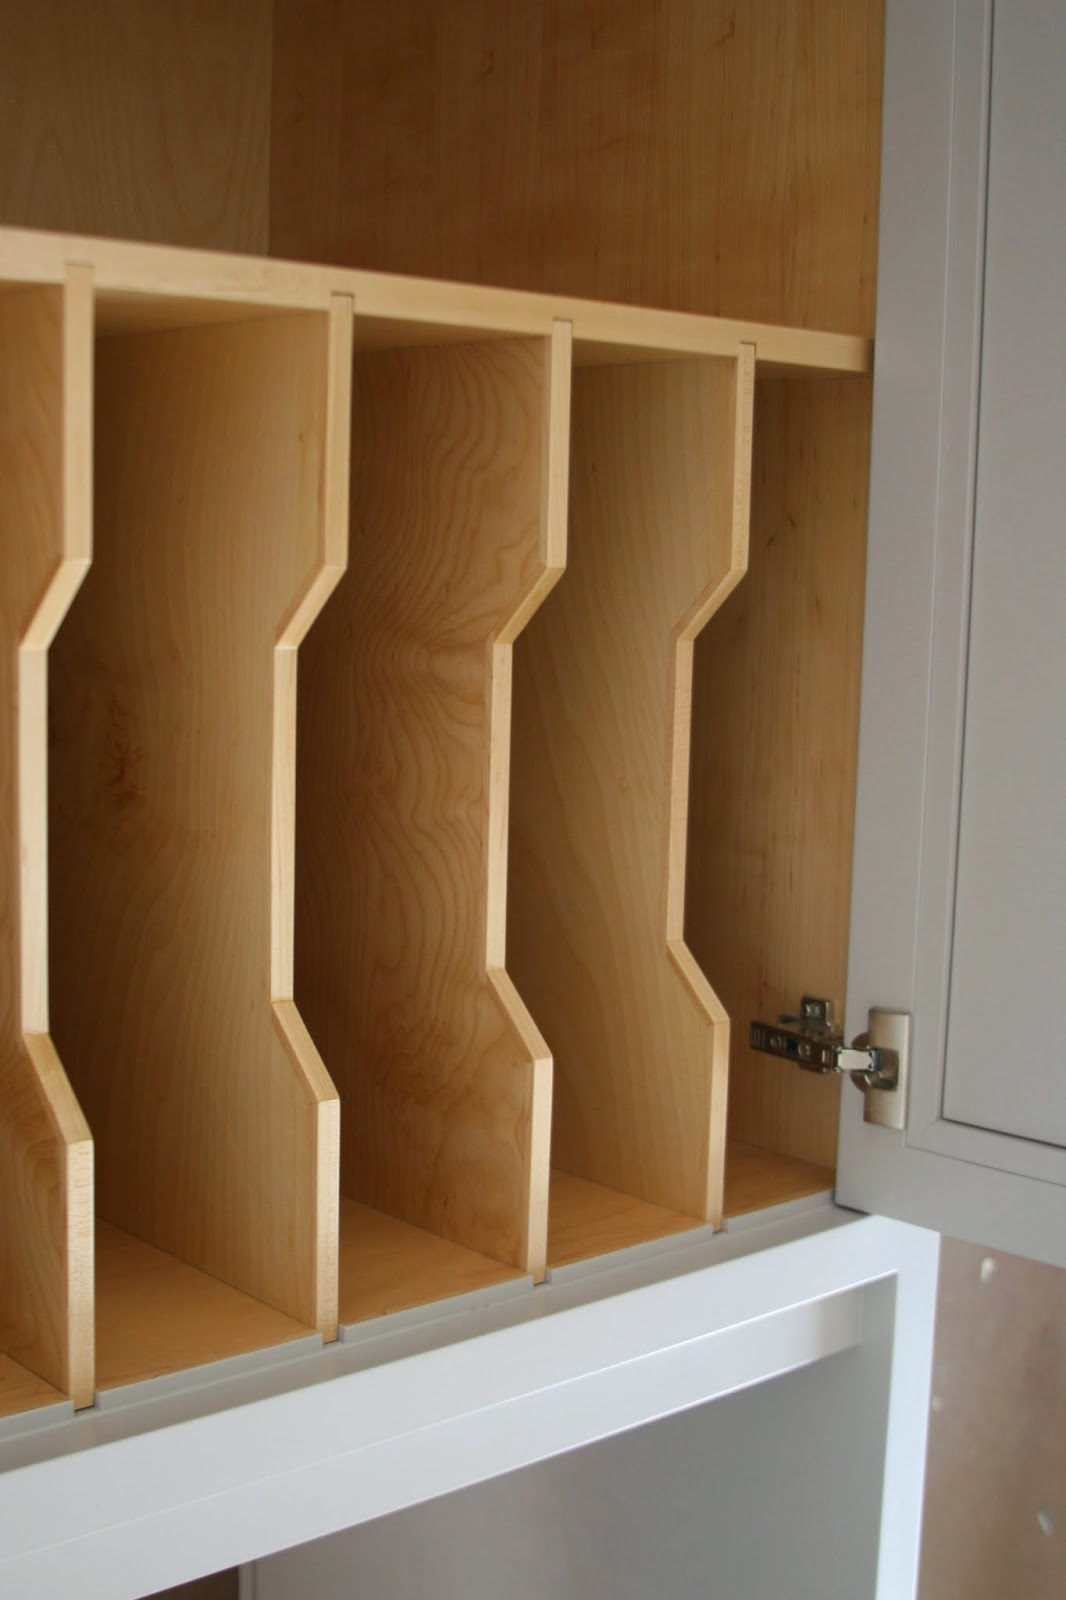 Lucy 39 s forever home cabinet sneak peek - Vertical tray dividers kitchen cabinets ...